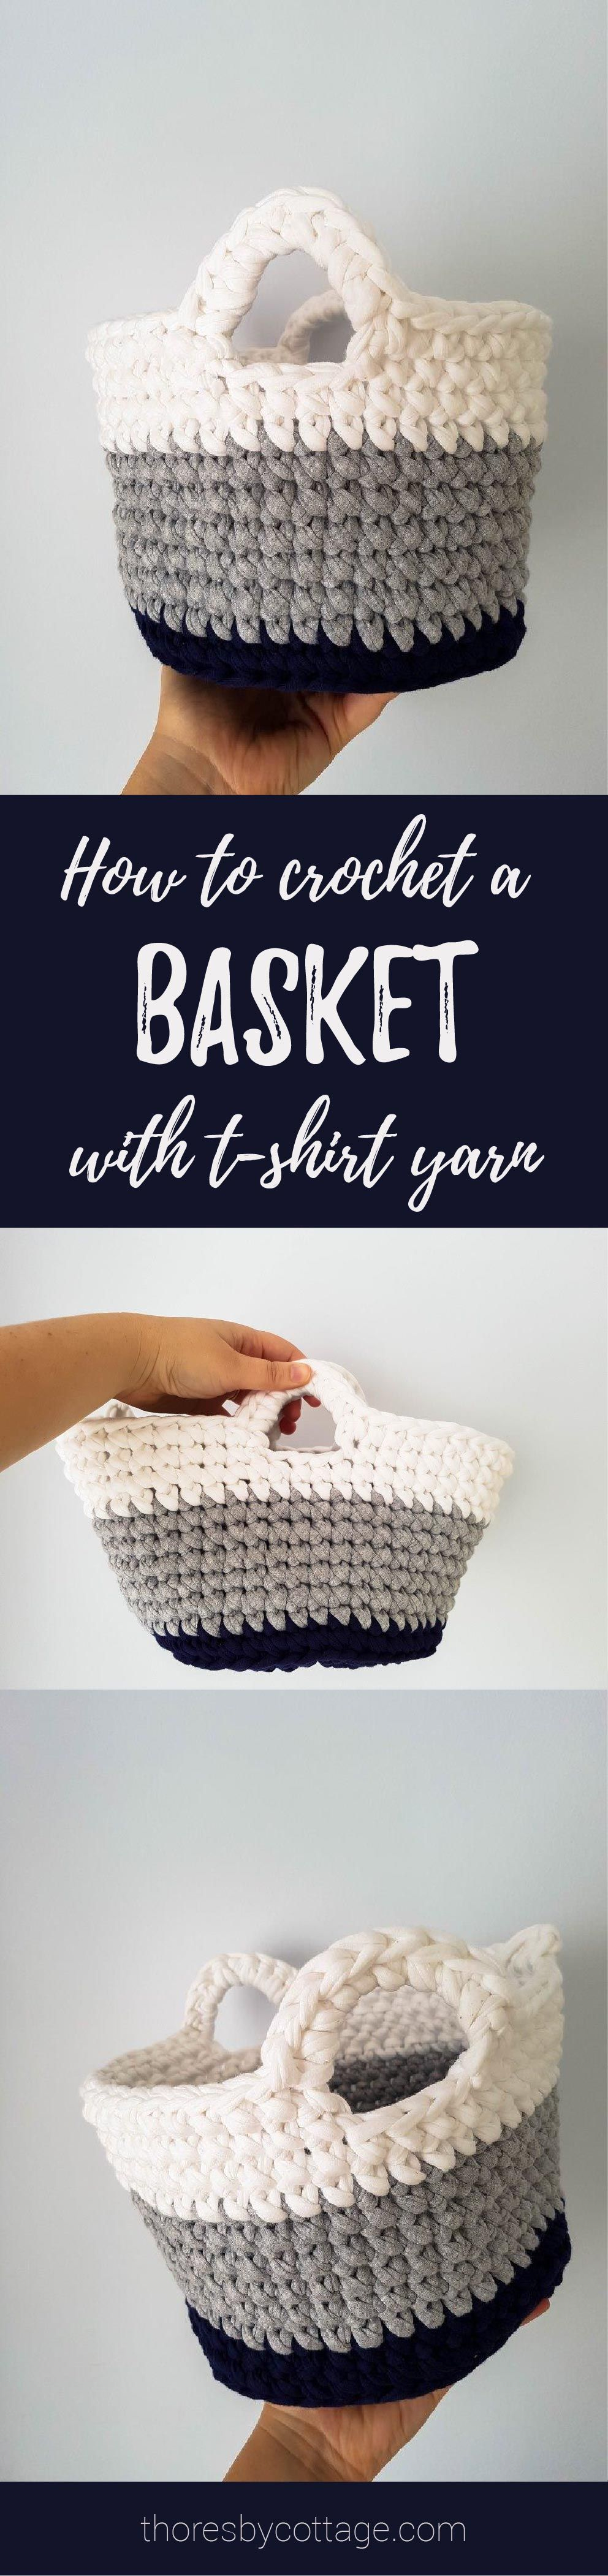 FREE crochet basket pattern using t-shirt yarn. Great for storing ...